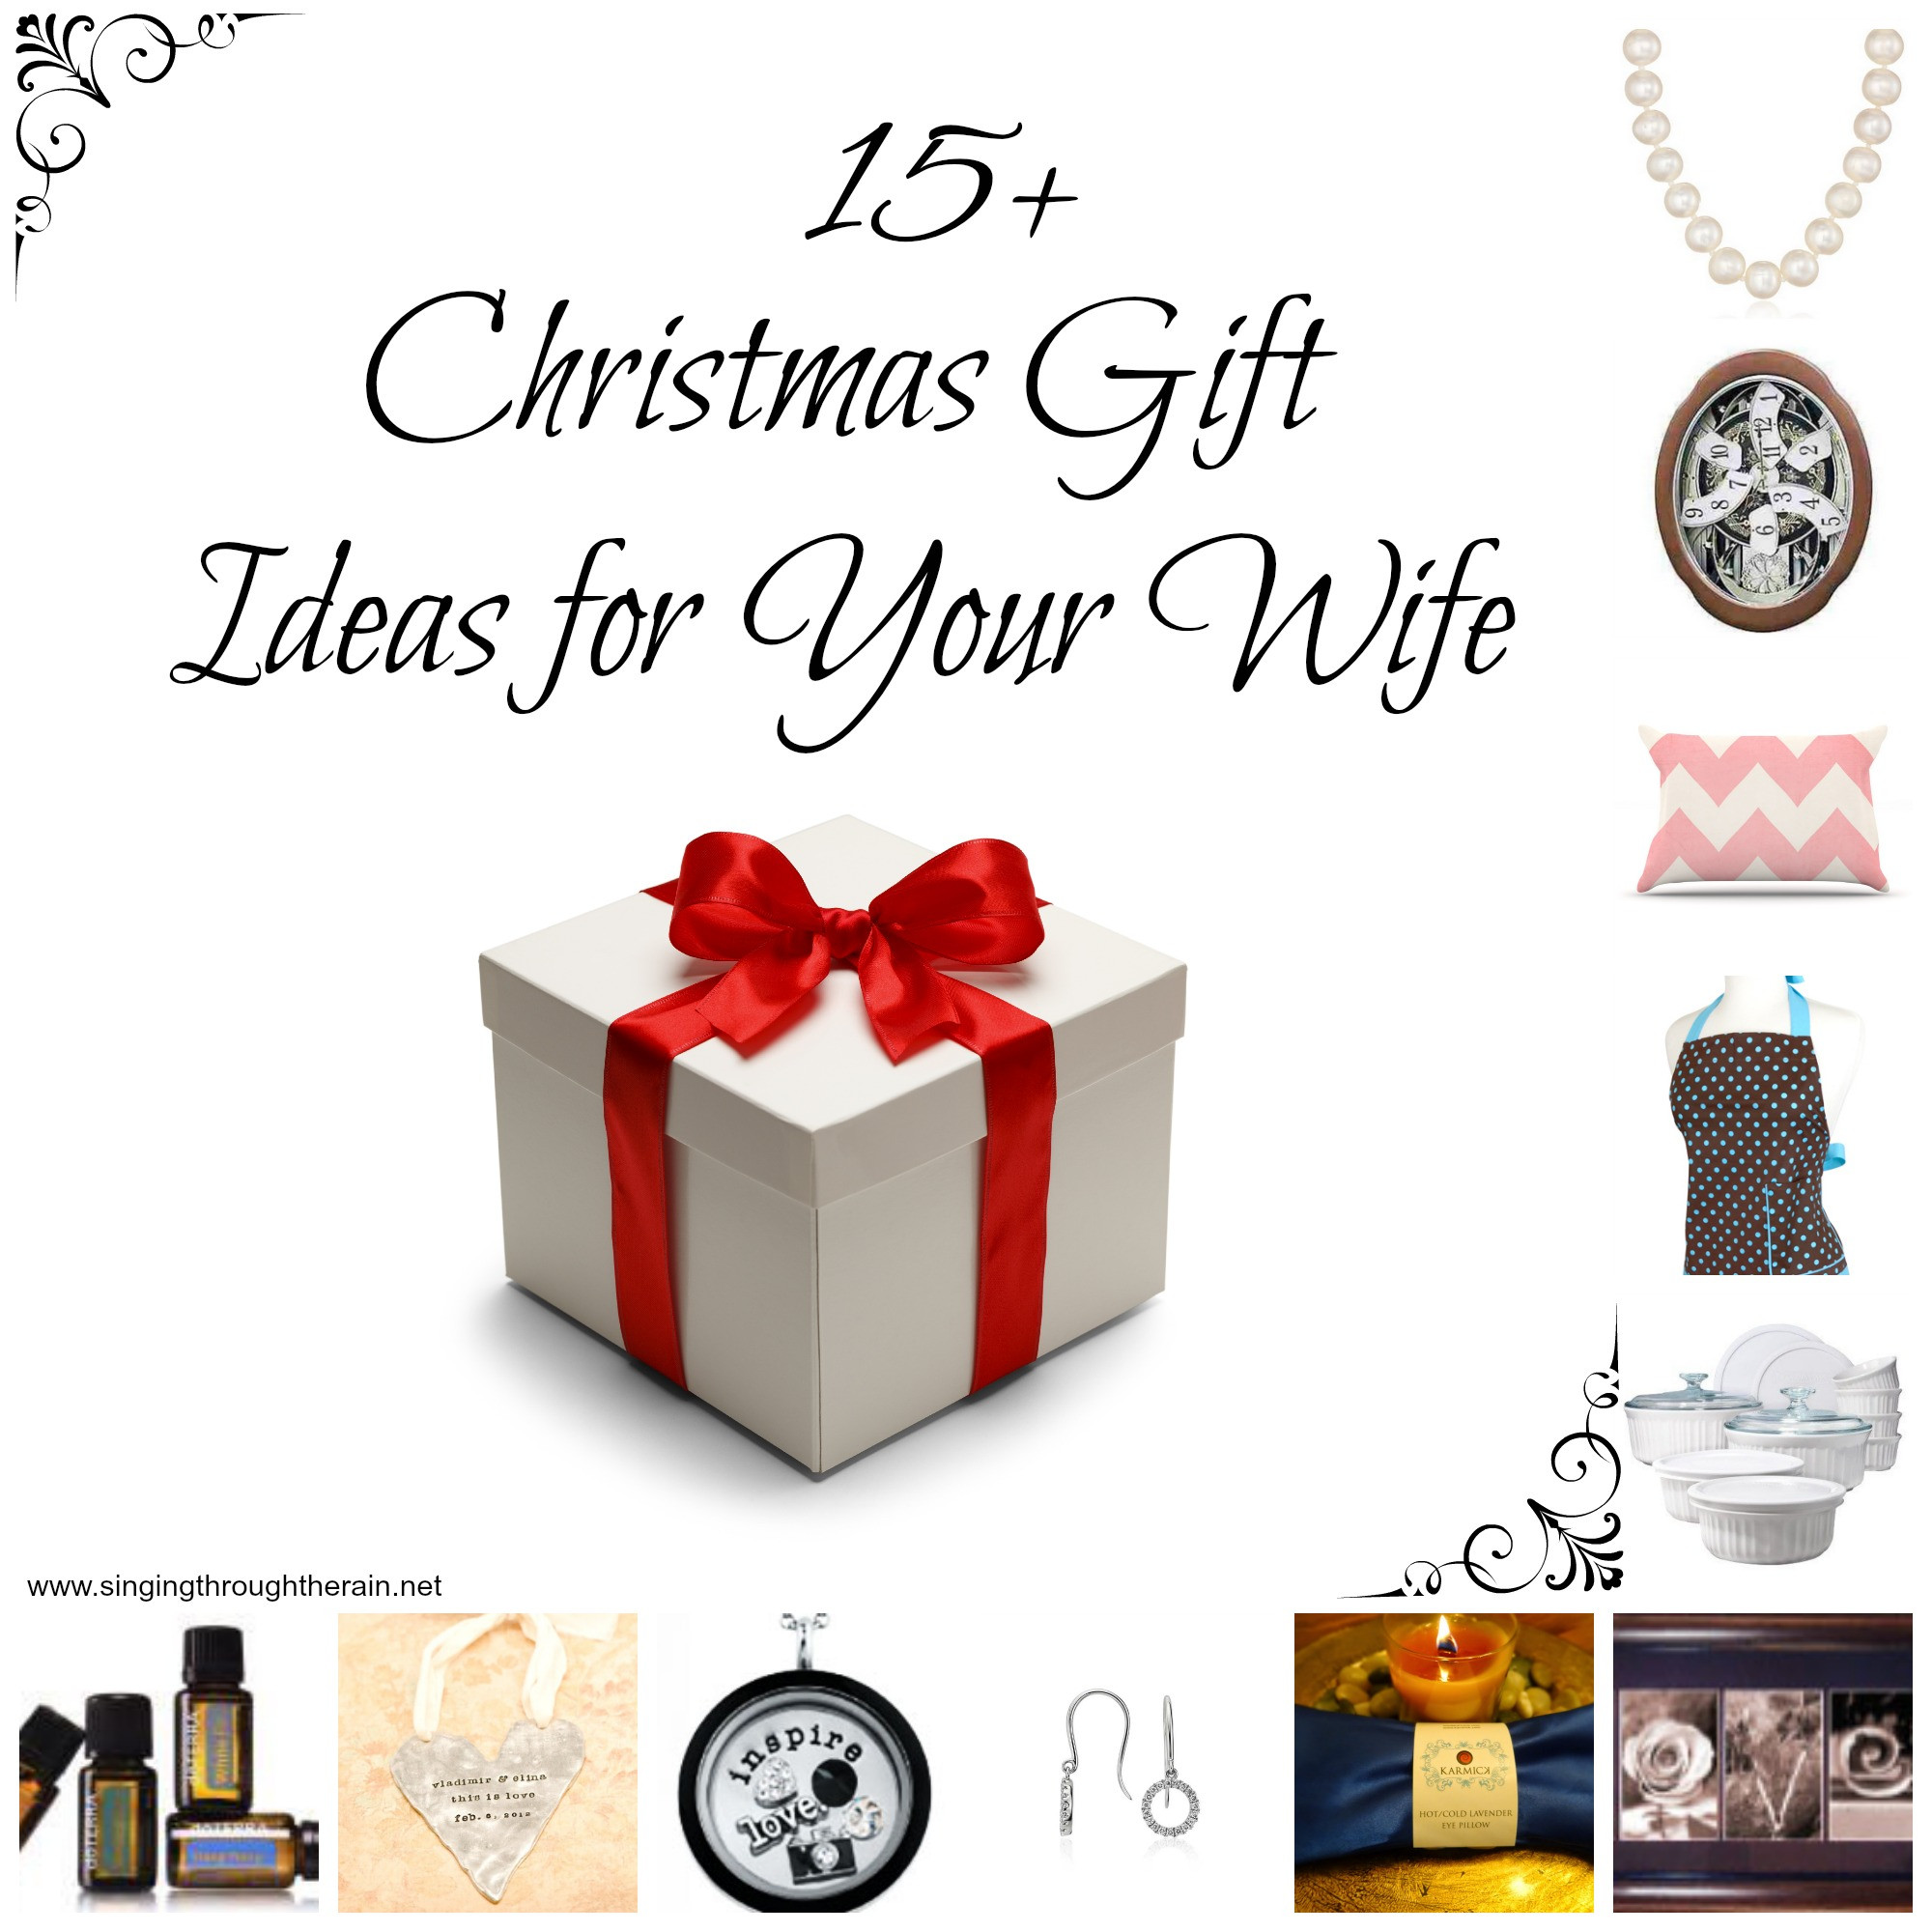 Christmas Gift Ideas For Your Wife  15 Christmas Gift Ideas for Your Wife